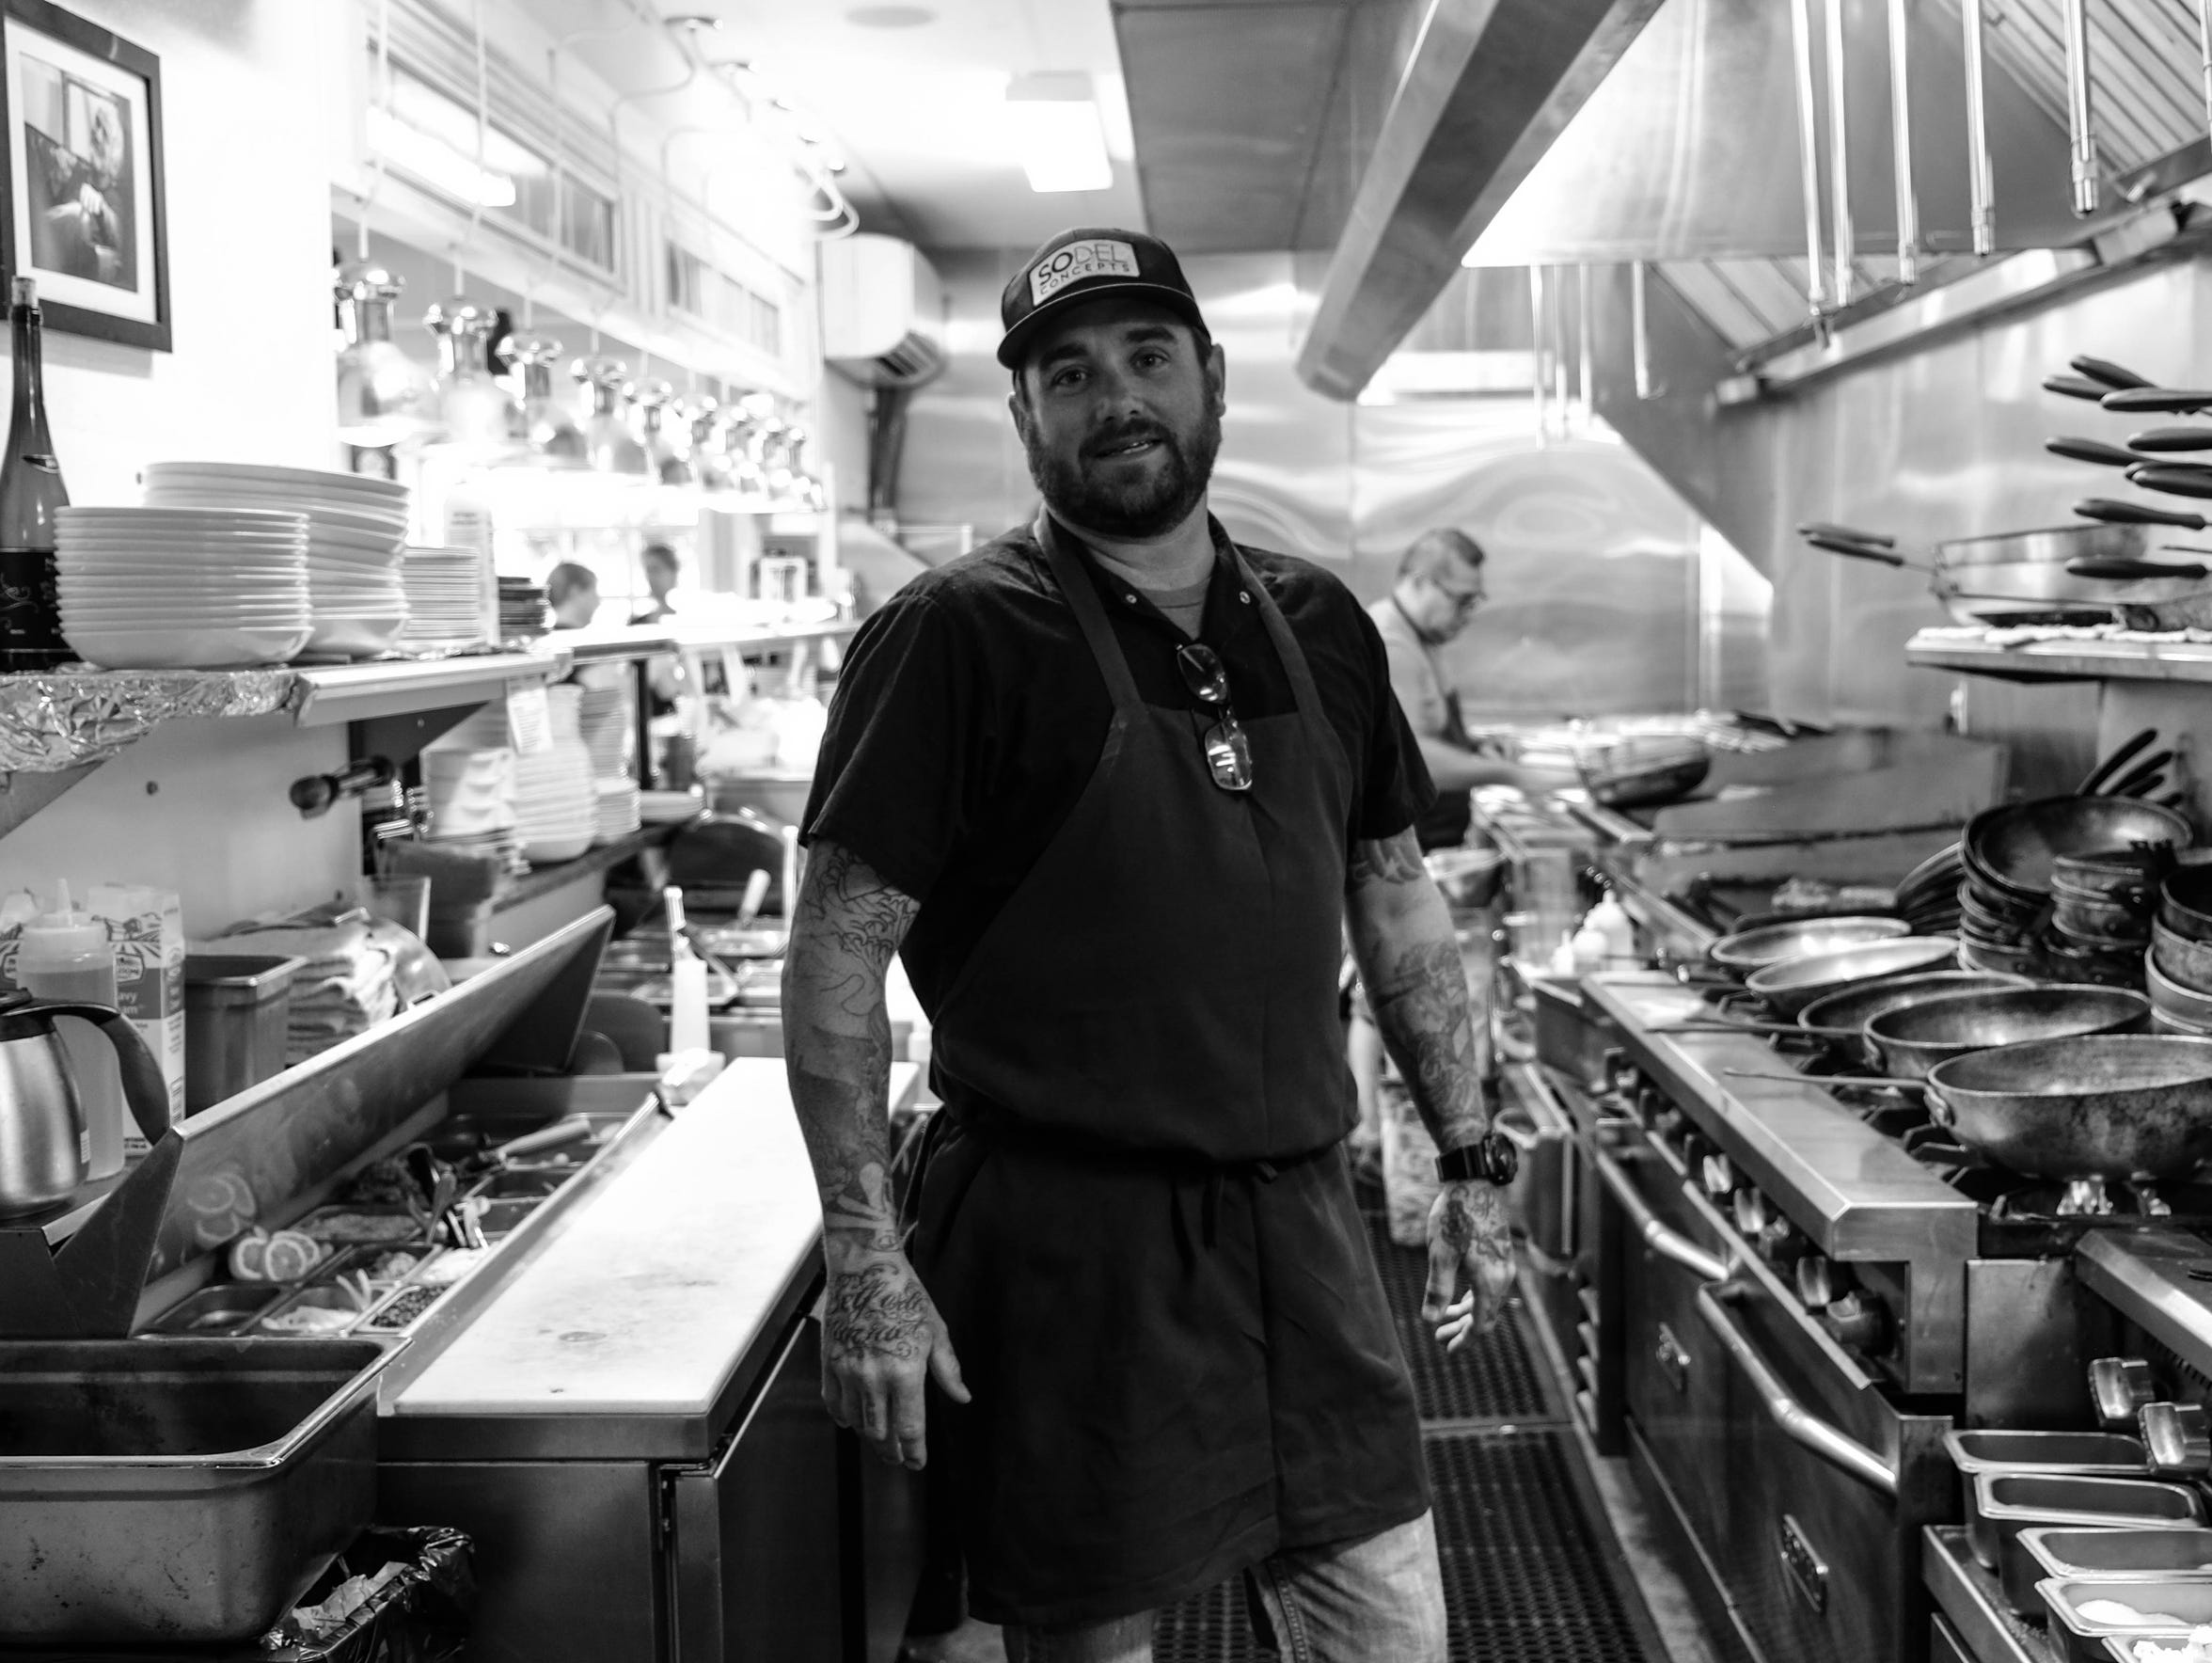 Jason Dietterick, executive chef at Bluecoast in Rehoboth